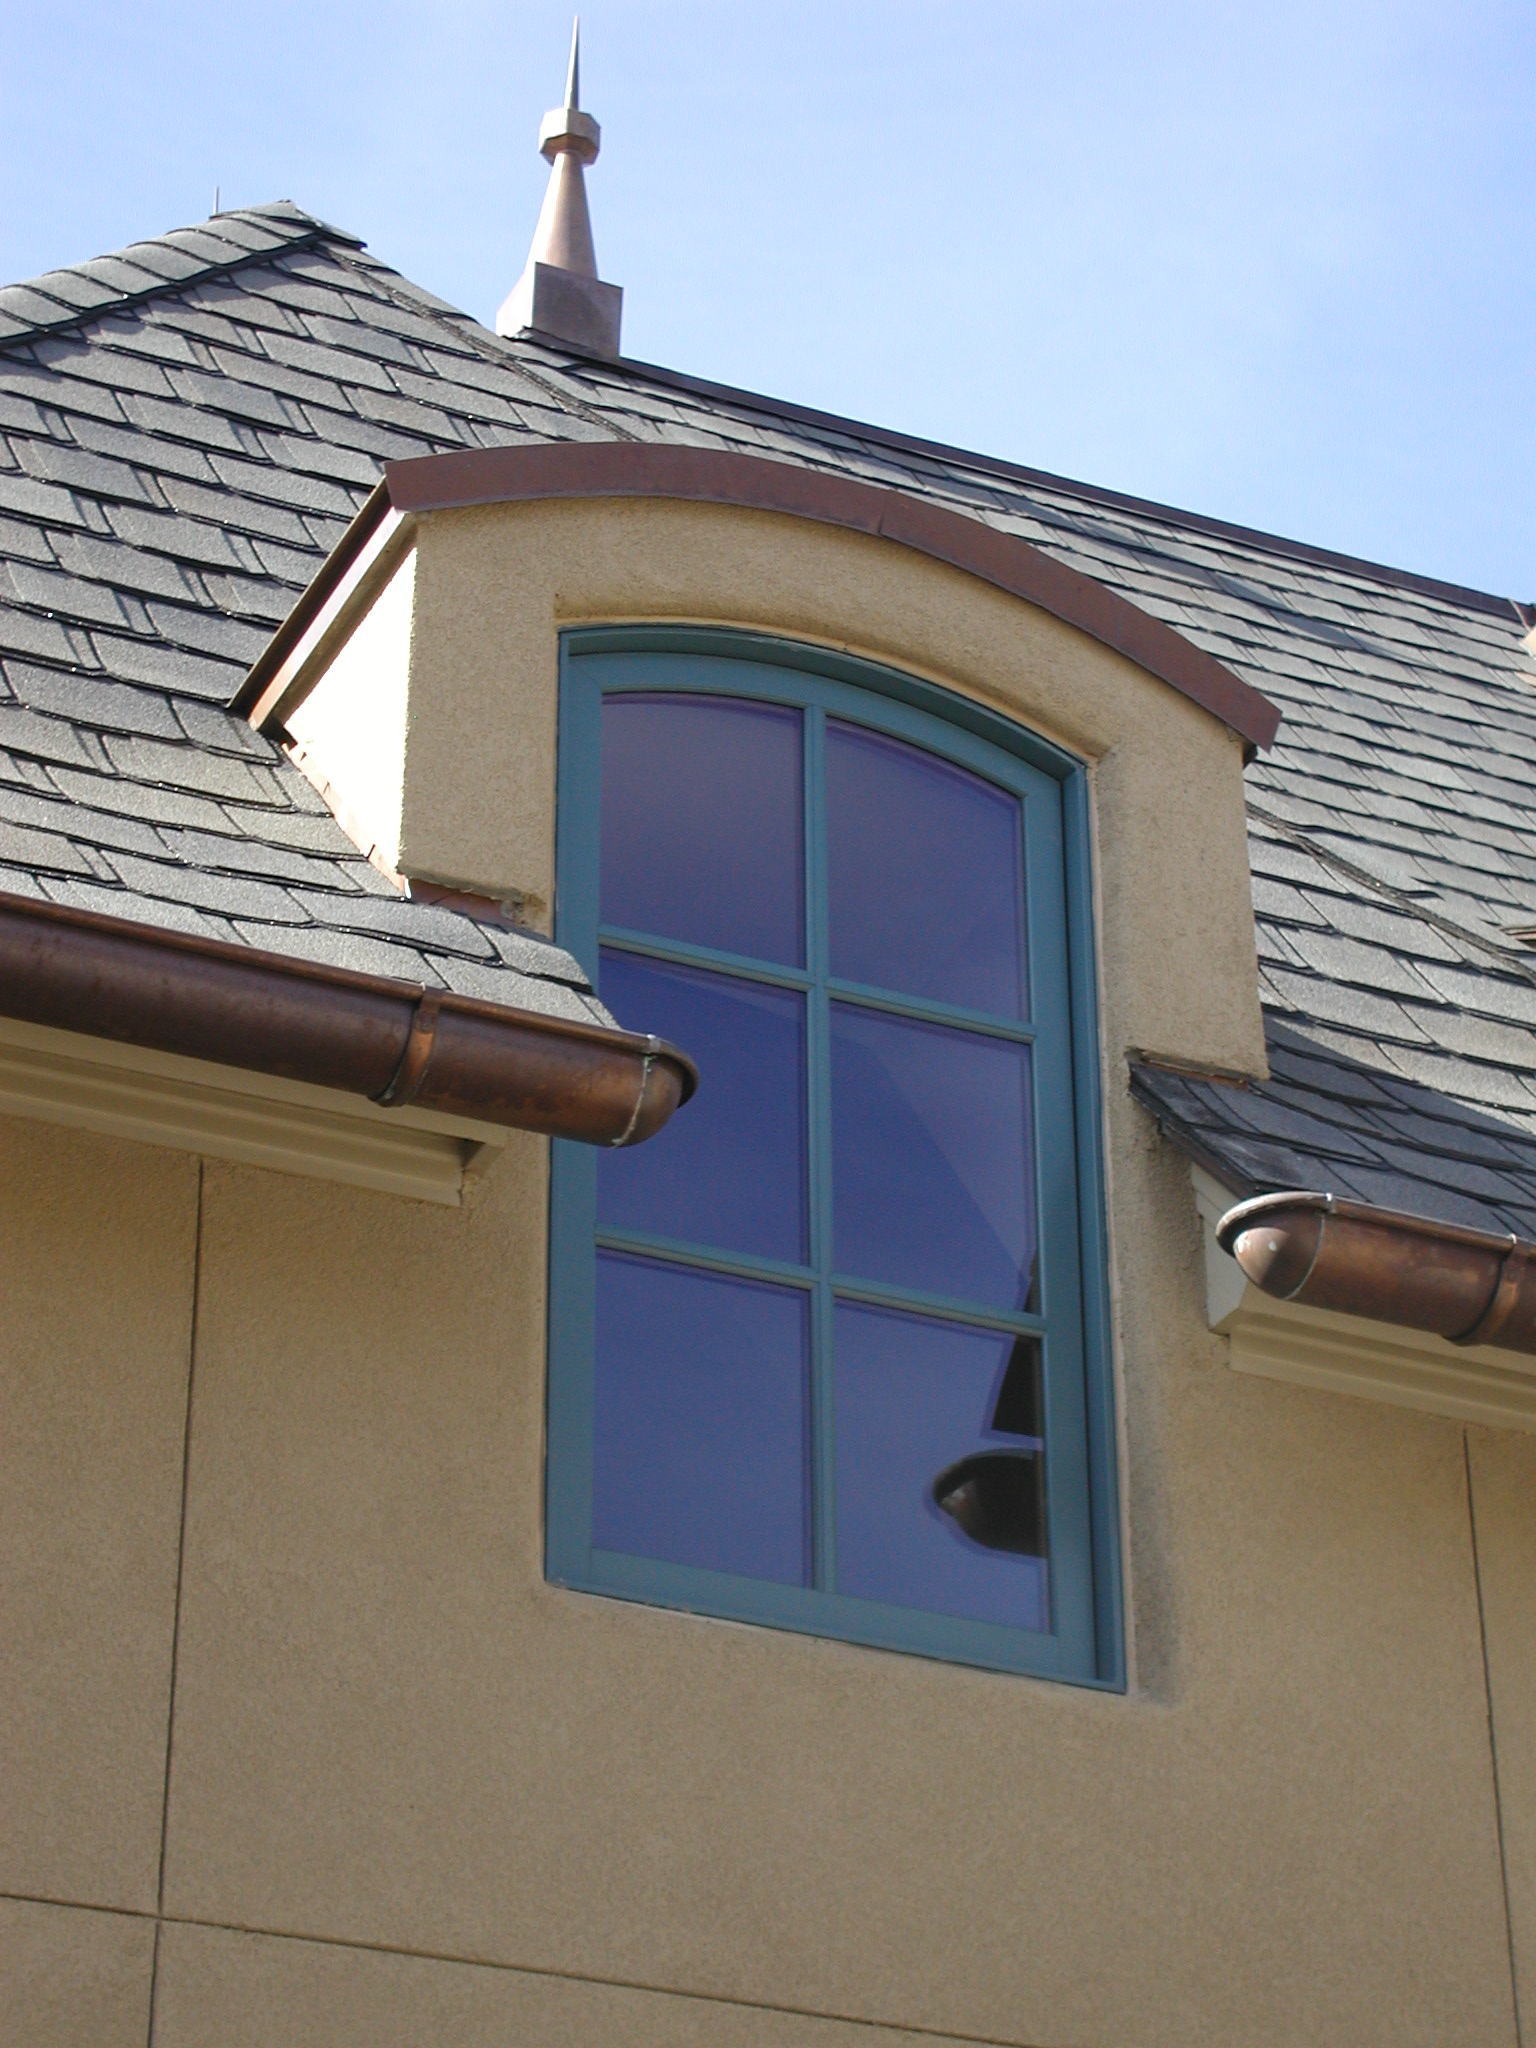 Engaged French Dormer on a New South Classics Home